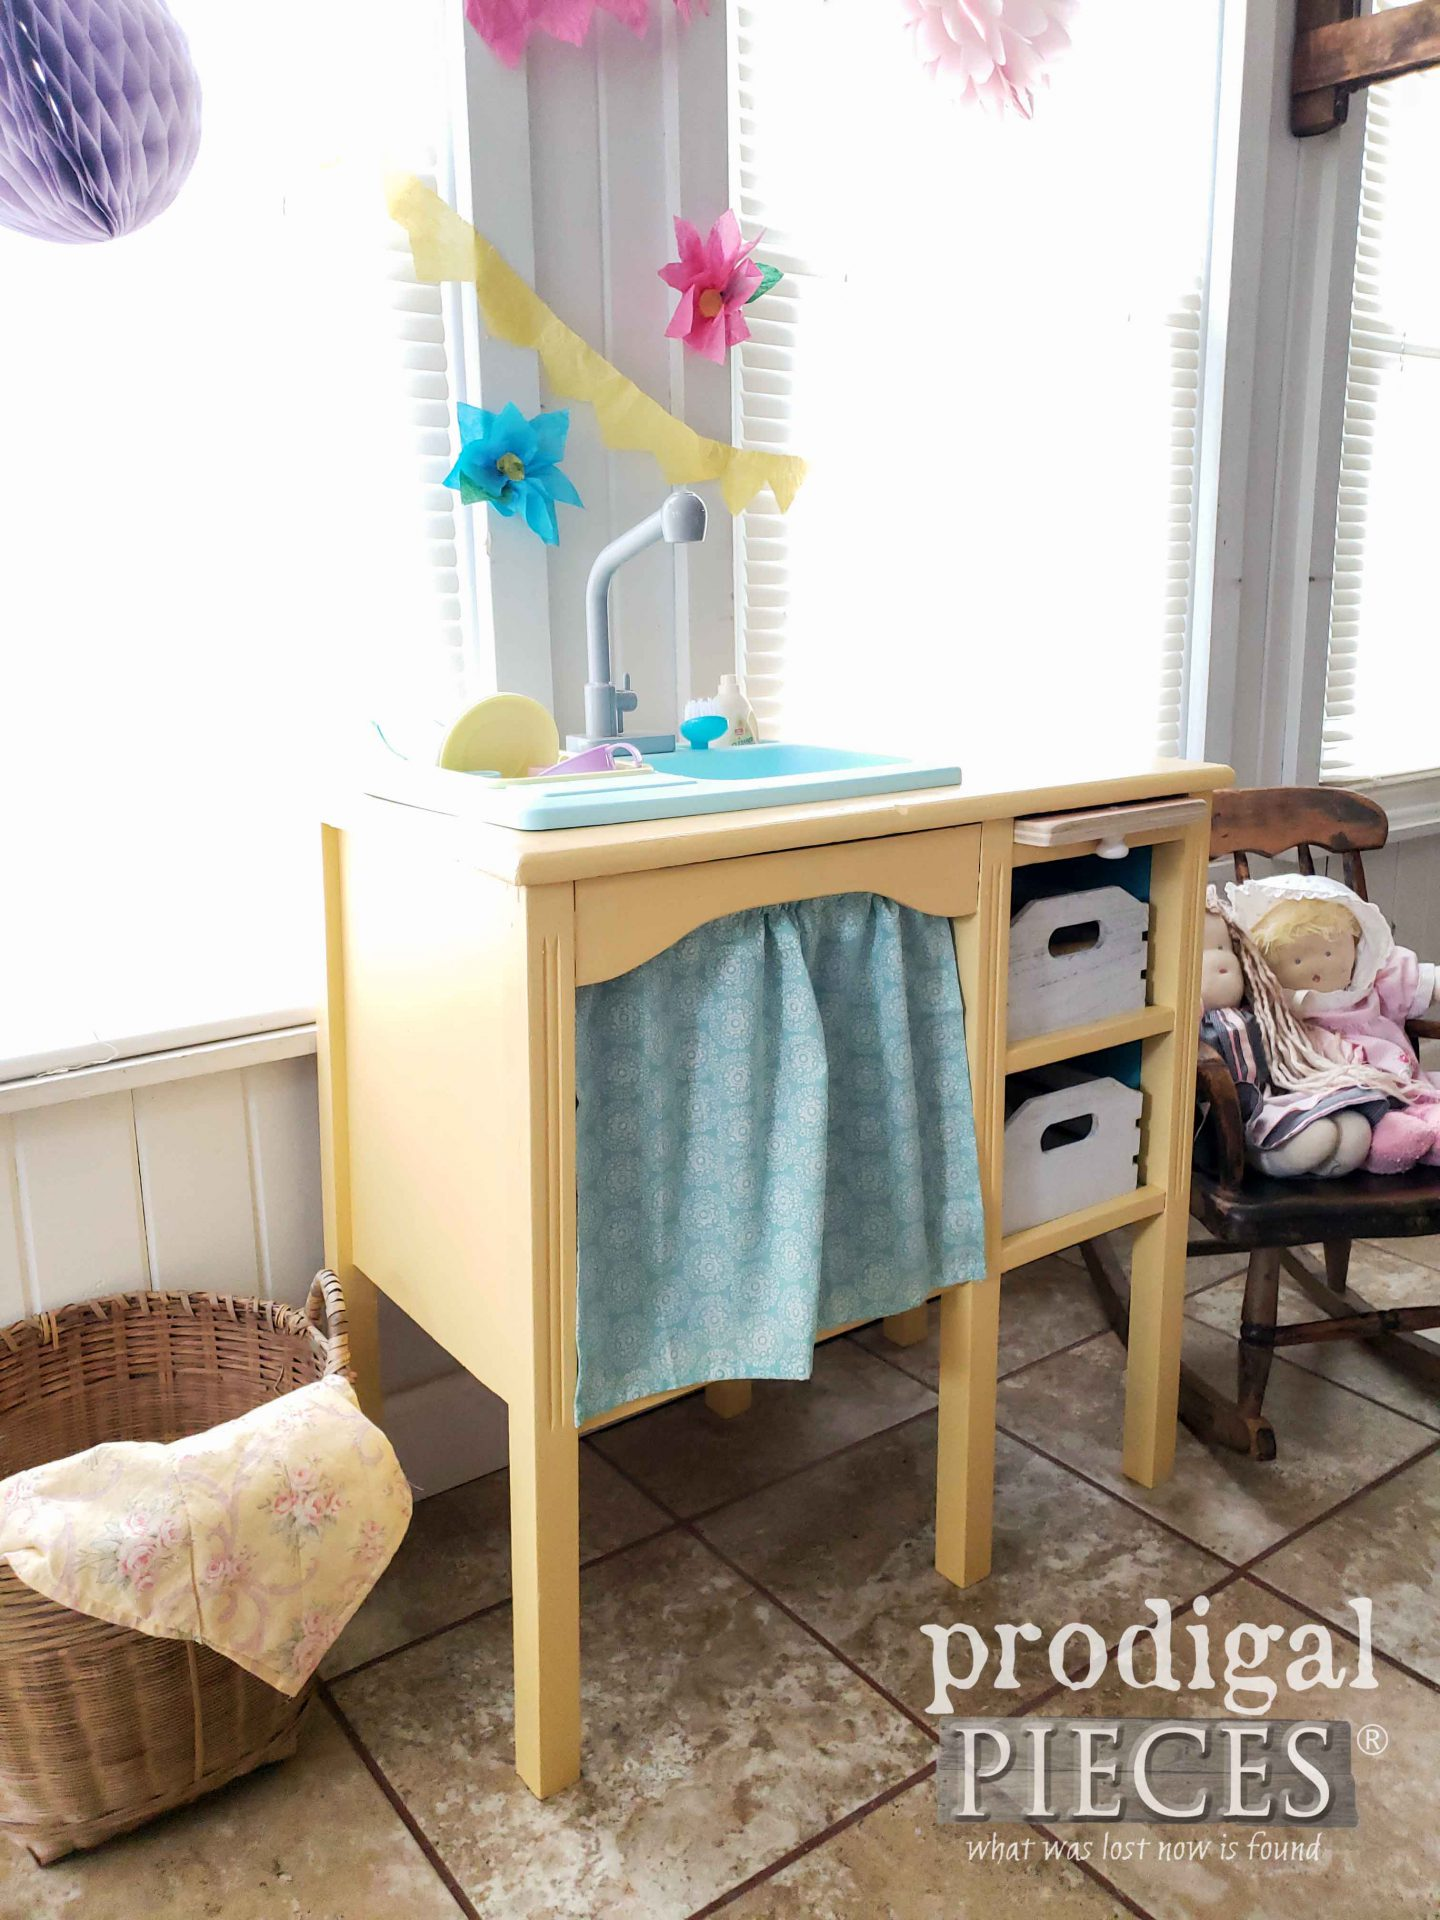 Cottage Chic Upcycled Play Kitchen with Running Faucet by Larissa of Prodigal Pieces | prodigalpieces.com #prodigalpieces #diy #handmade #kids #toys